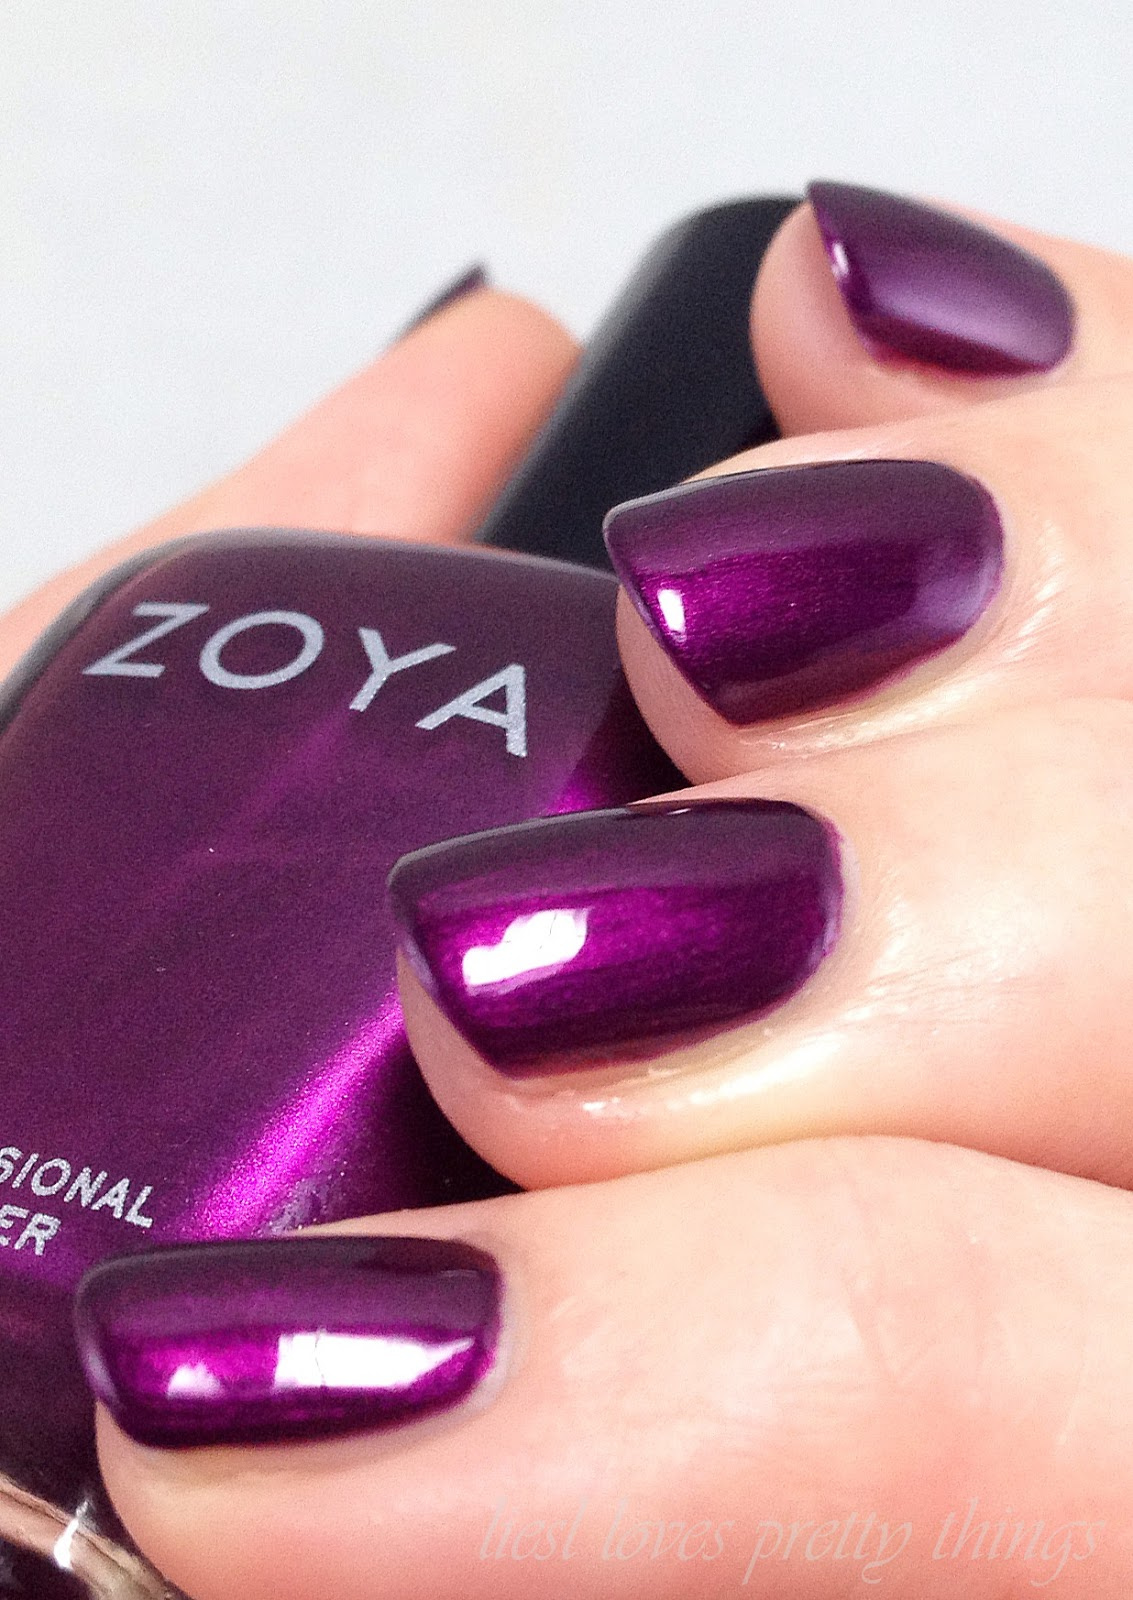 Zoya Haven-- Wishes 2014 swatch and review